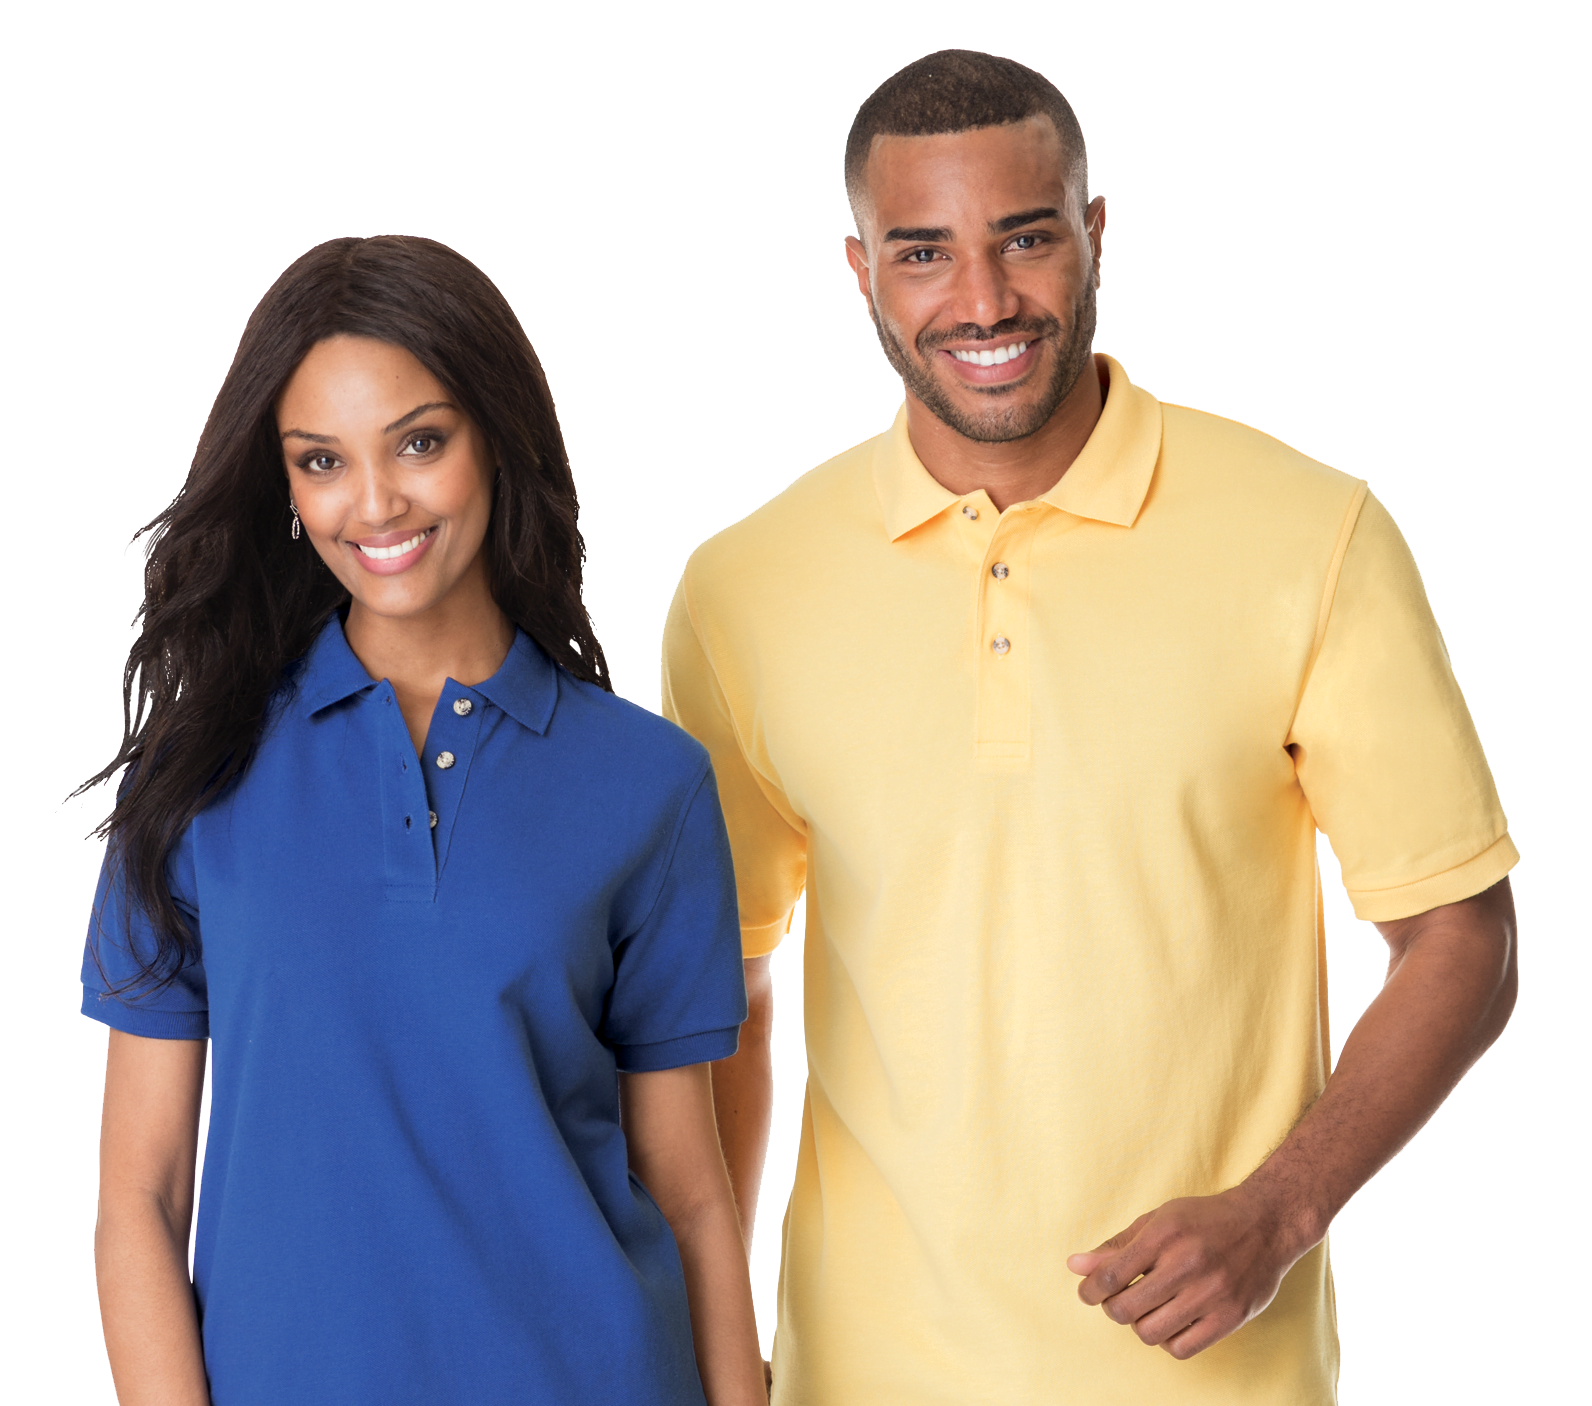 embroidery polo shirts no logo - Corporate Apparel